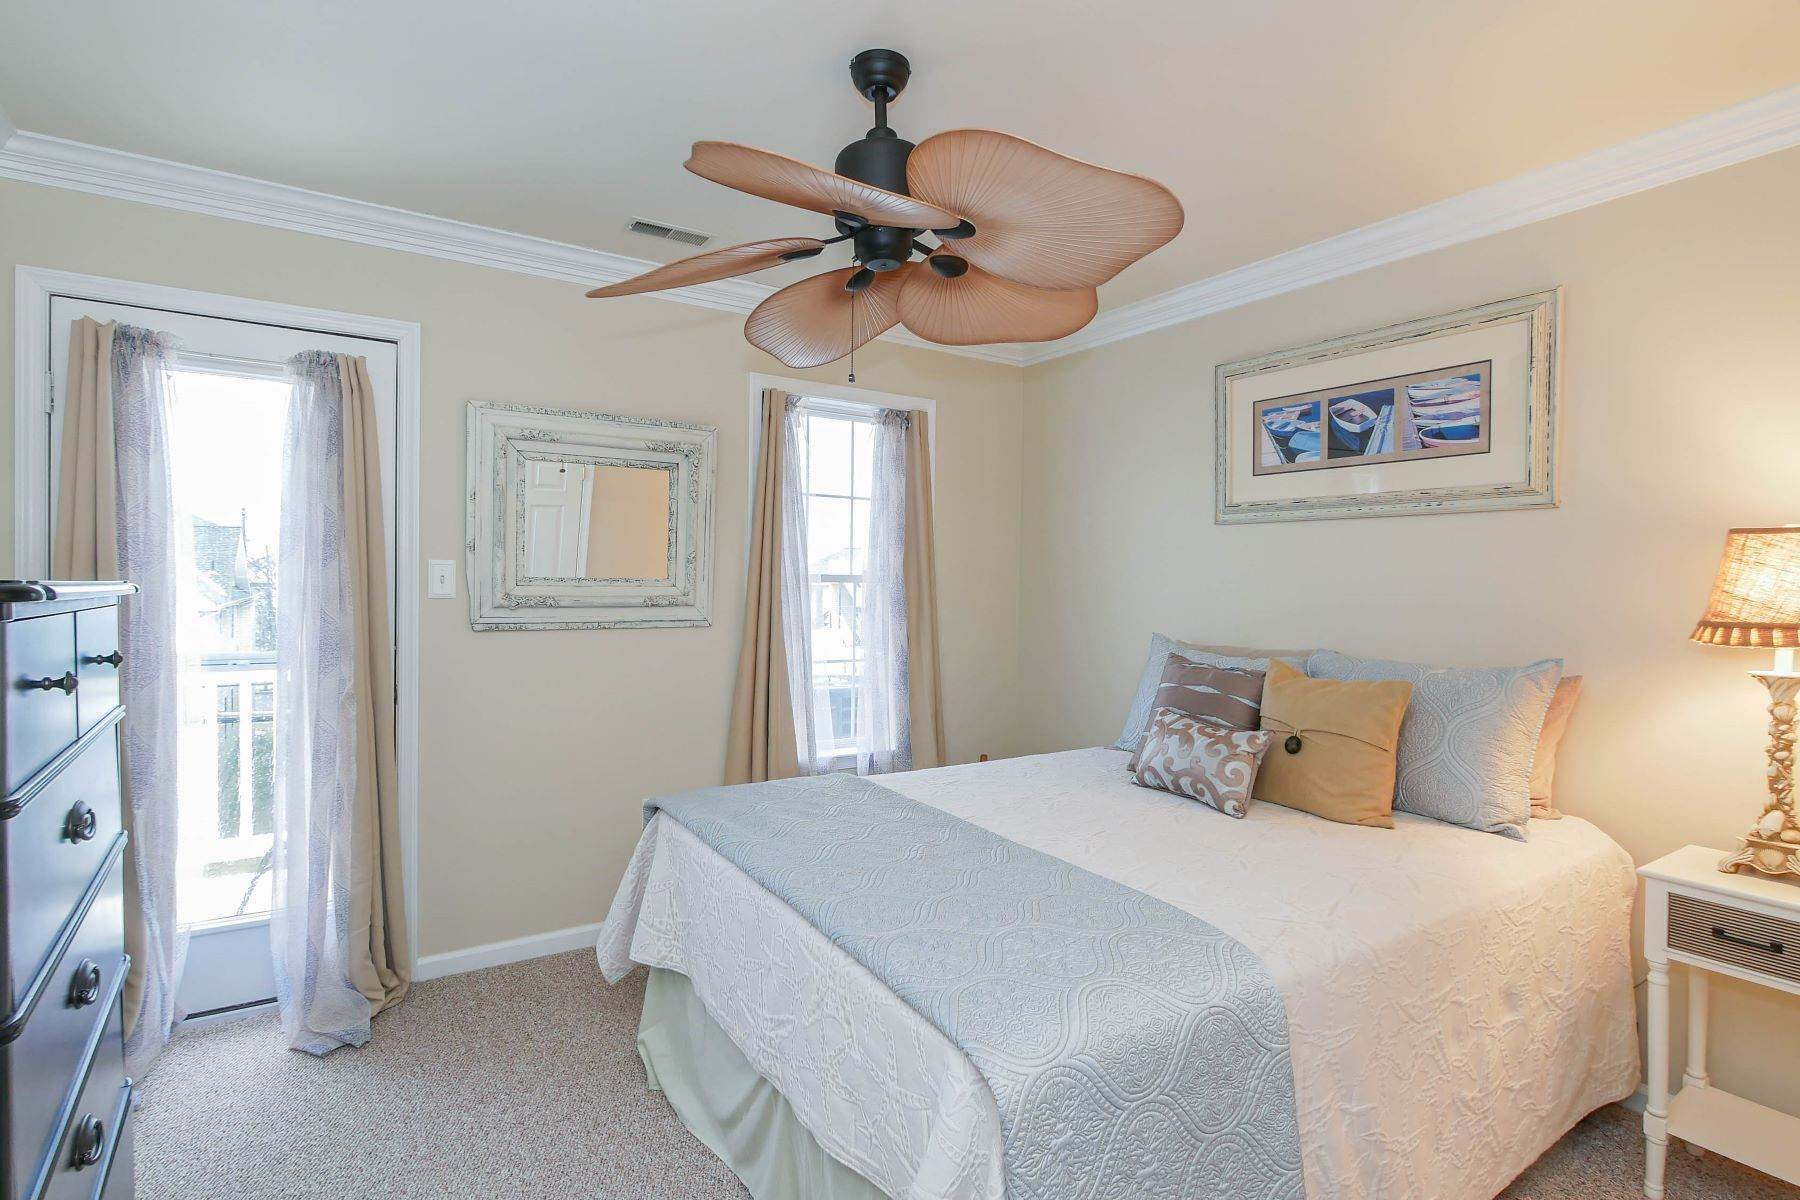 19. Condominiums for Sale at 1336-38 Wesley Ave, Unit 2 Ocean City, New Jersey 08226 United States